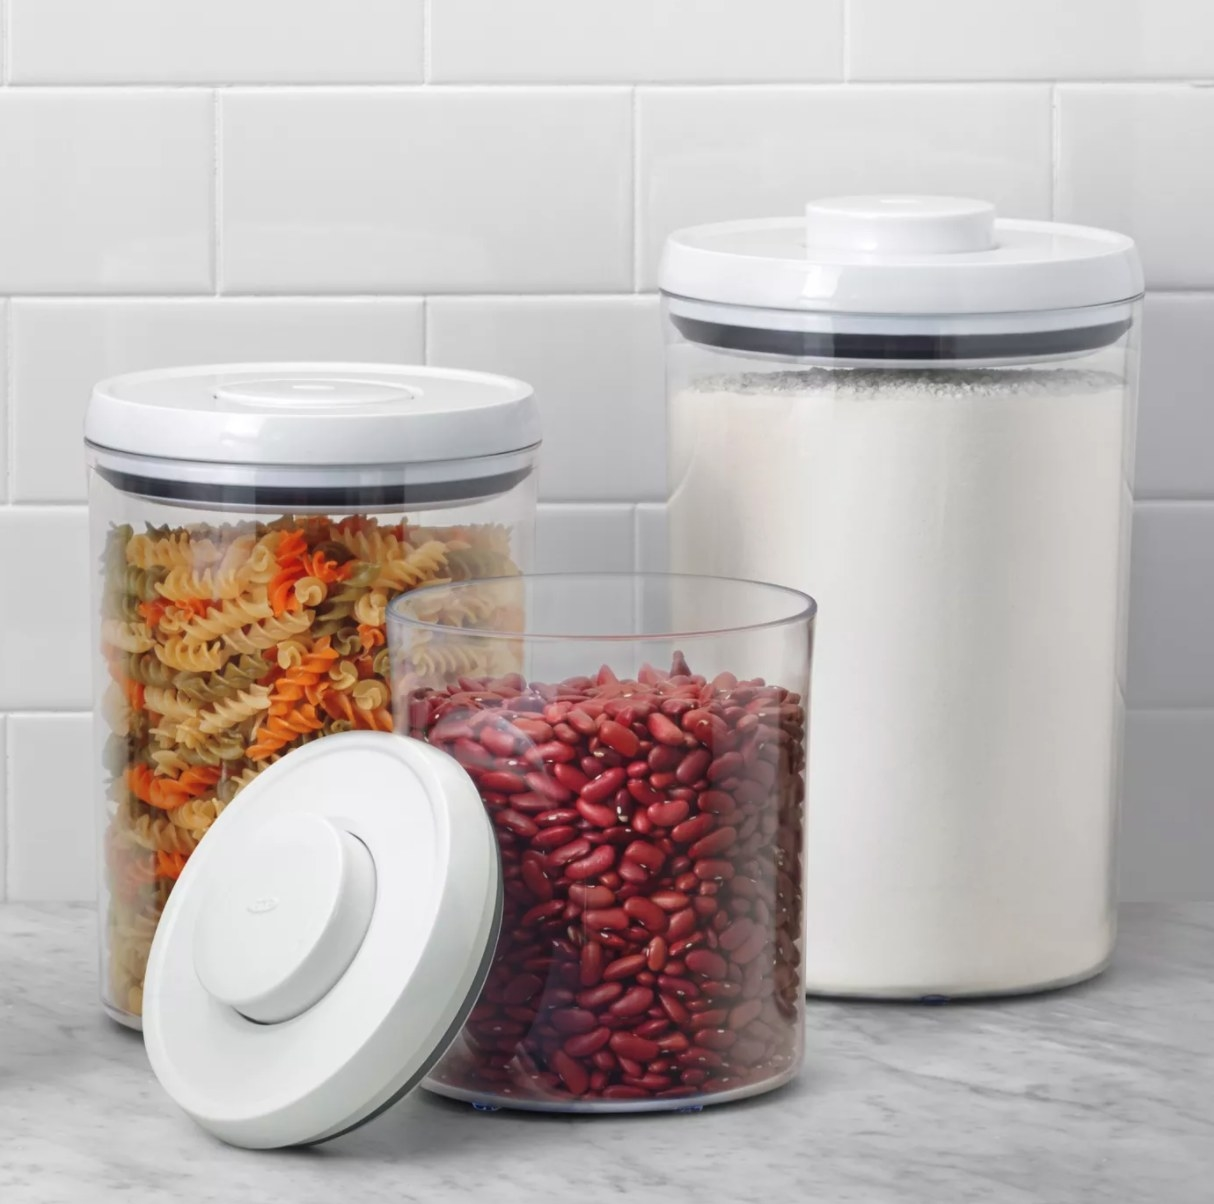 The set of three canisters with noodles, flour, and beans in them